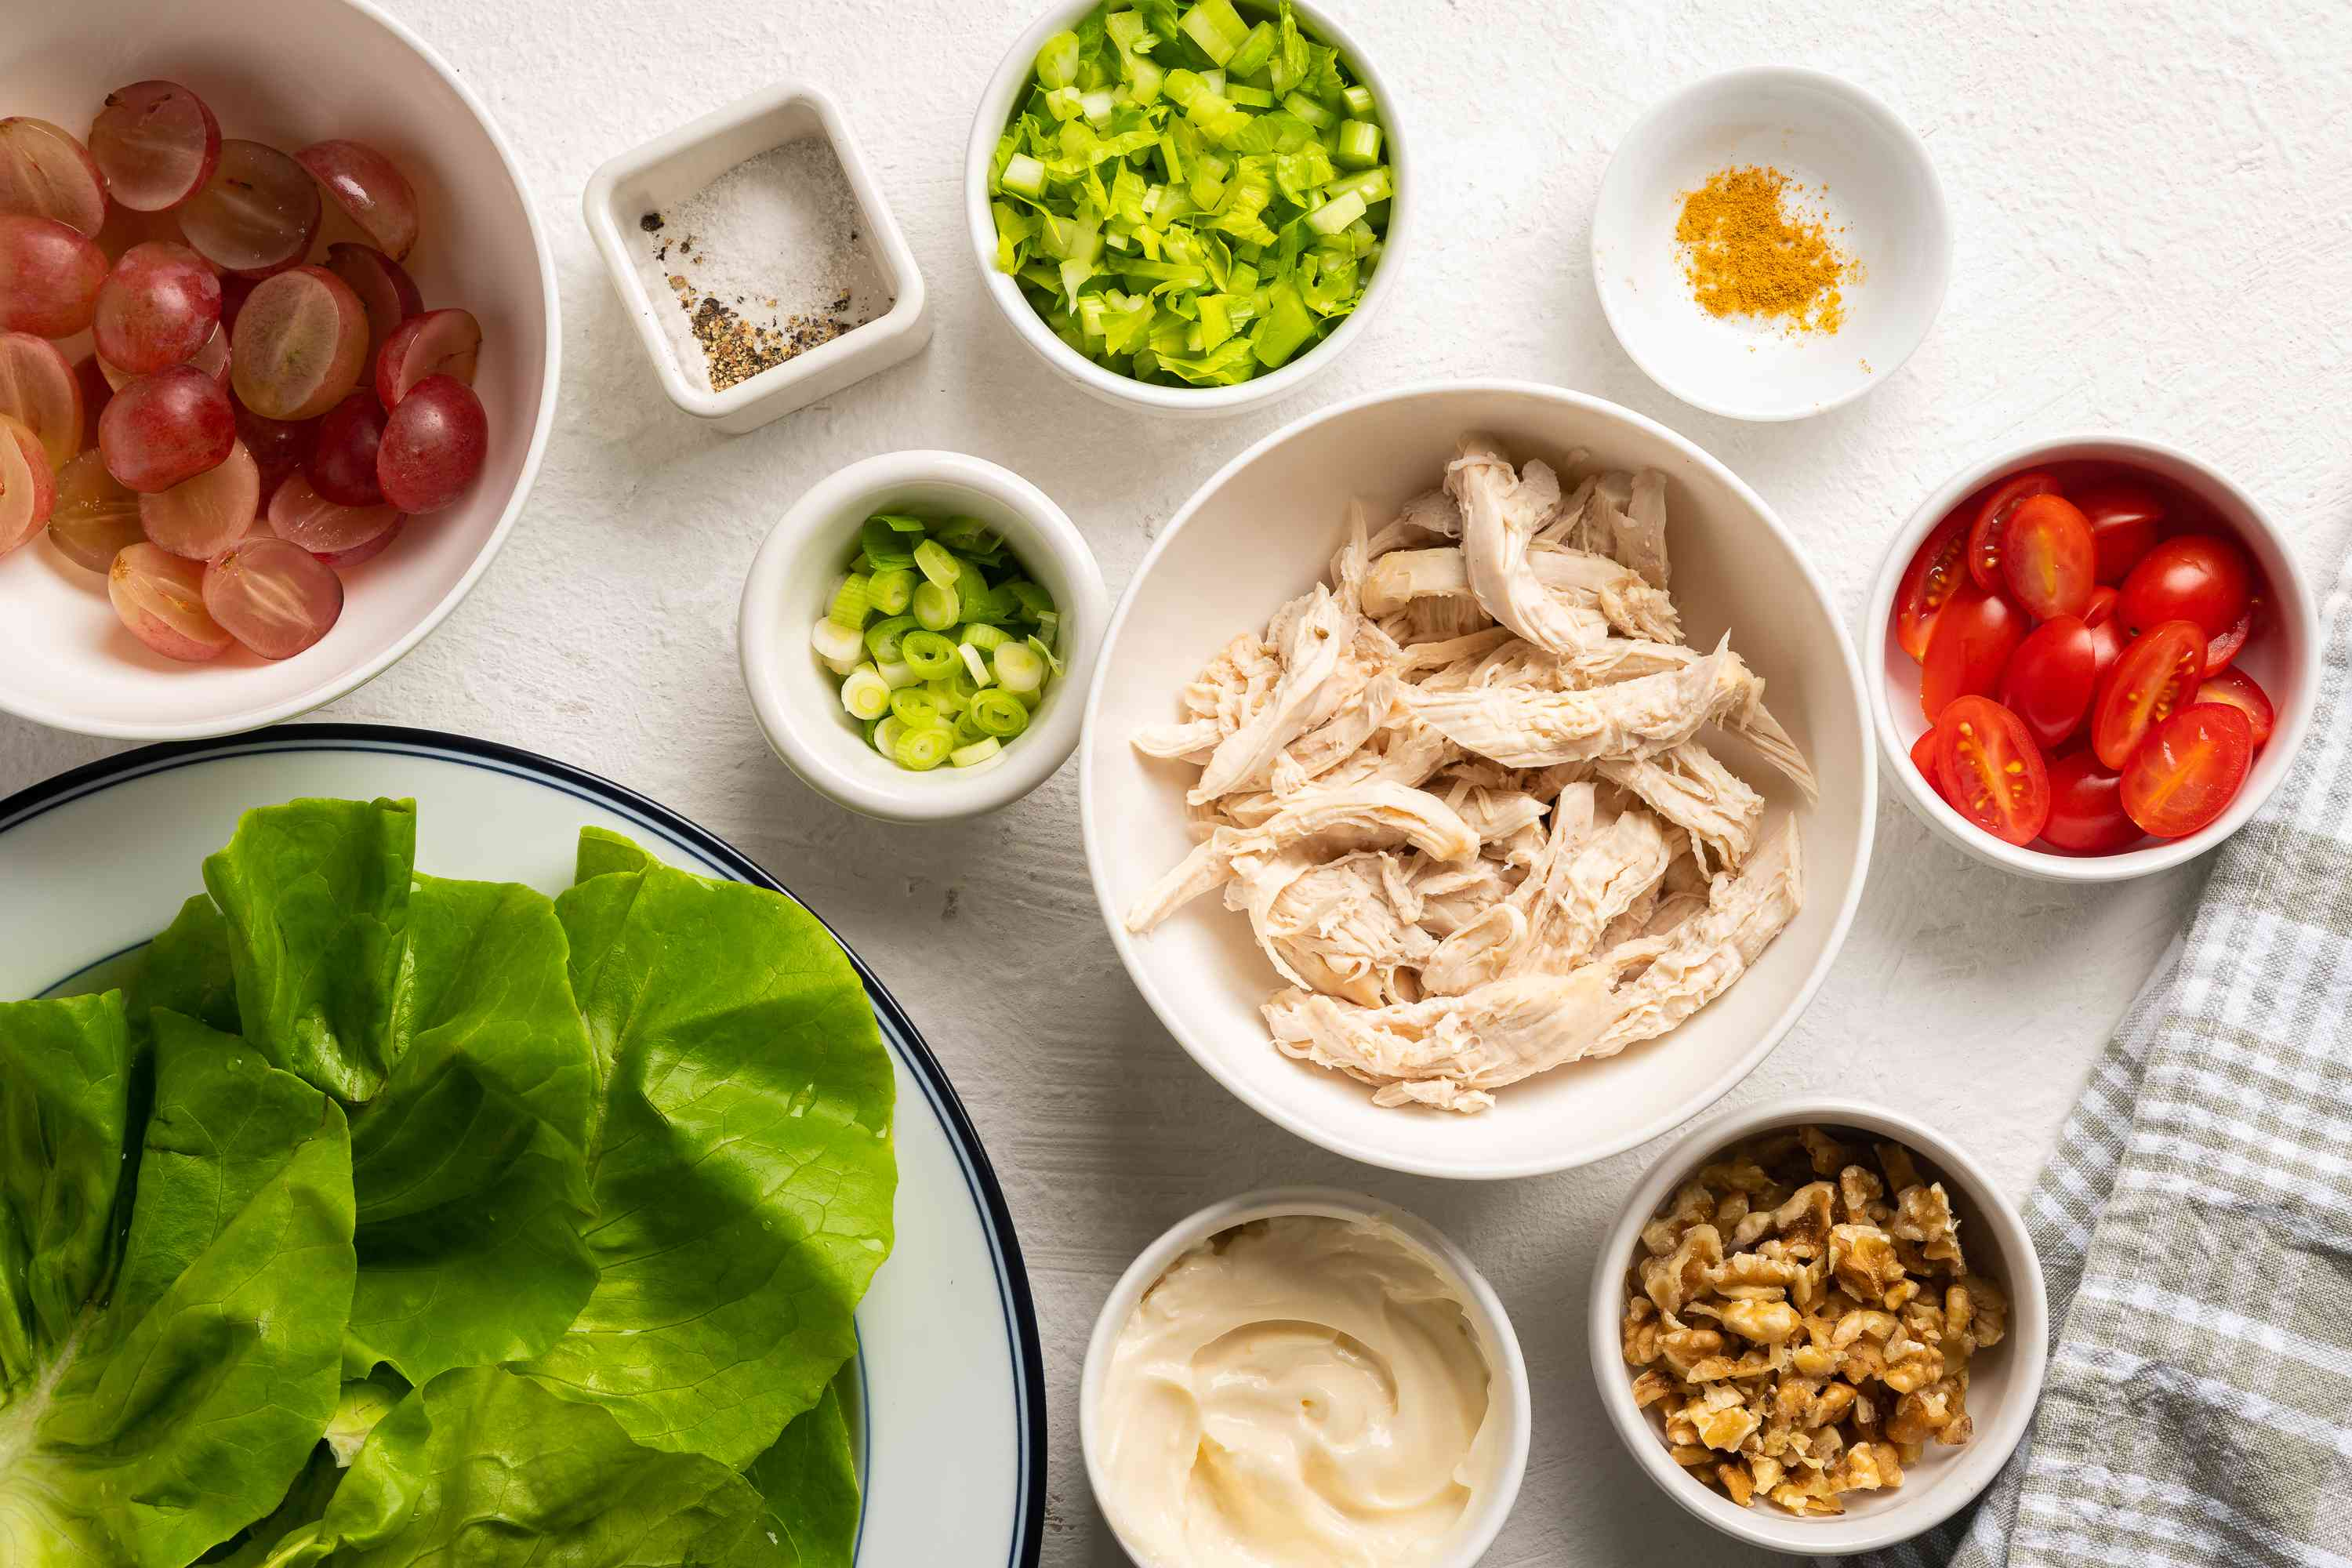 Simple Chicken Salad With Grapes ingredients